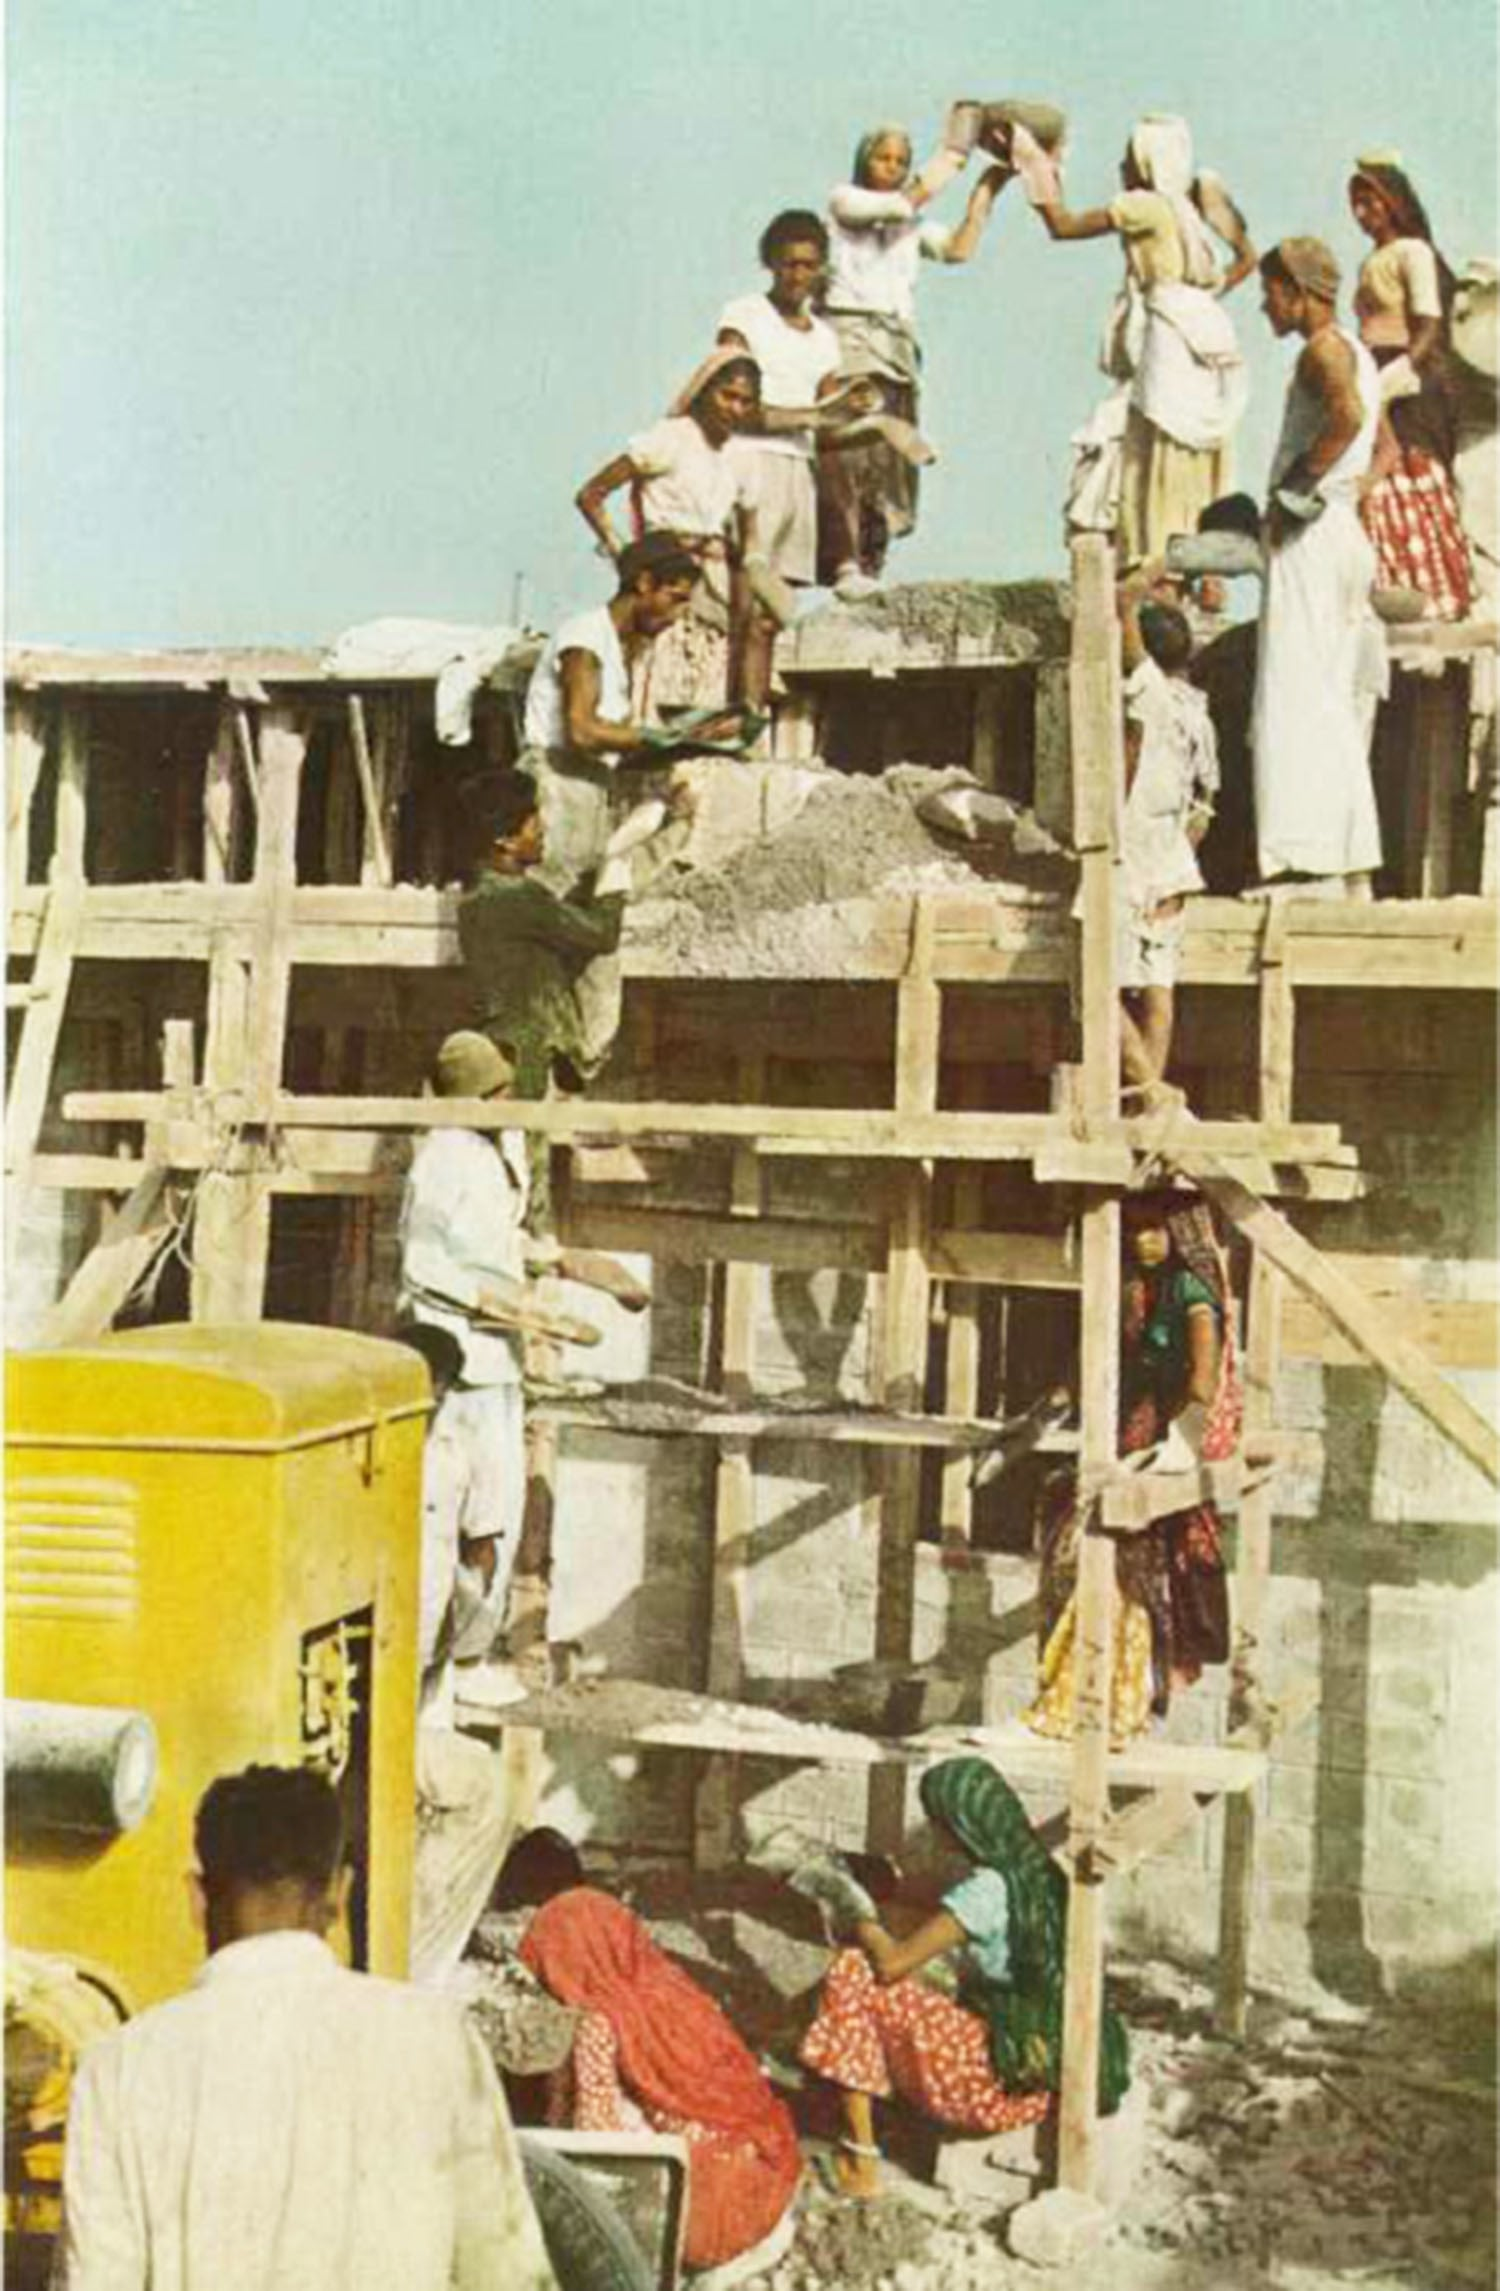 Men and women workers laying bricks during the construction of a building in 1952.